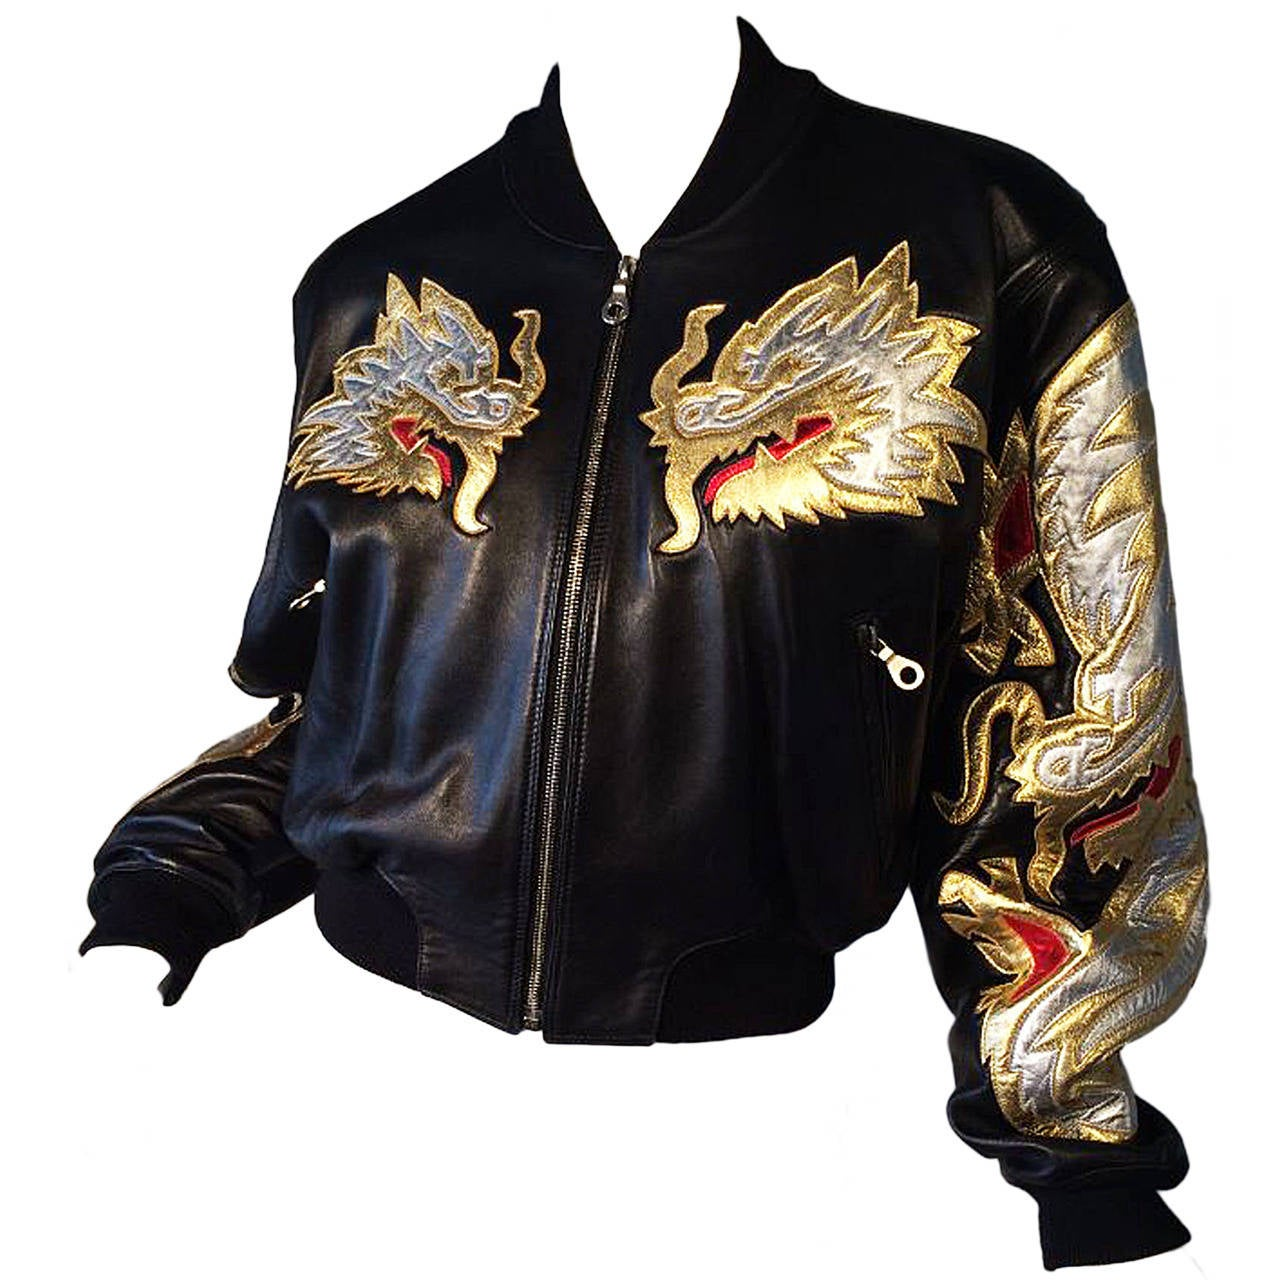 North Beach Leather Quot Dragon Quot Bomber Jacket 1980s At 1stdibs